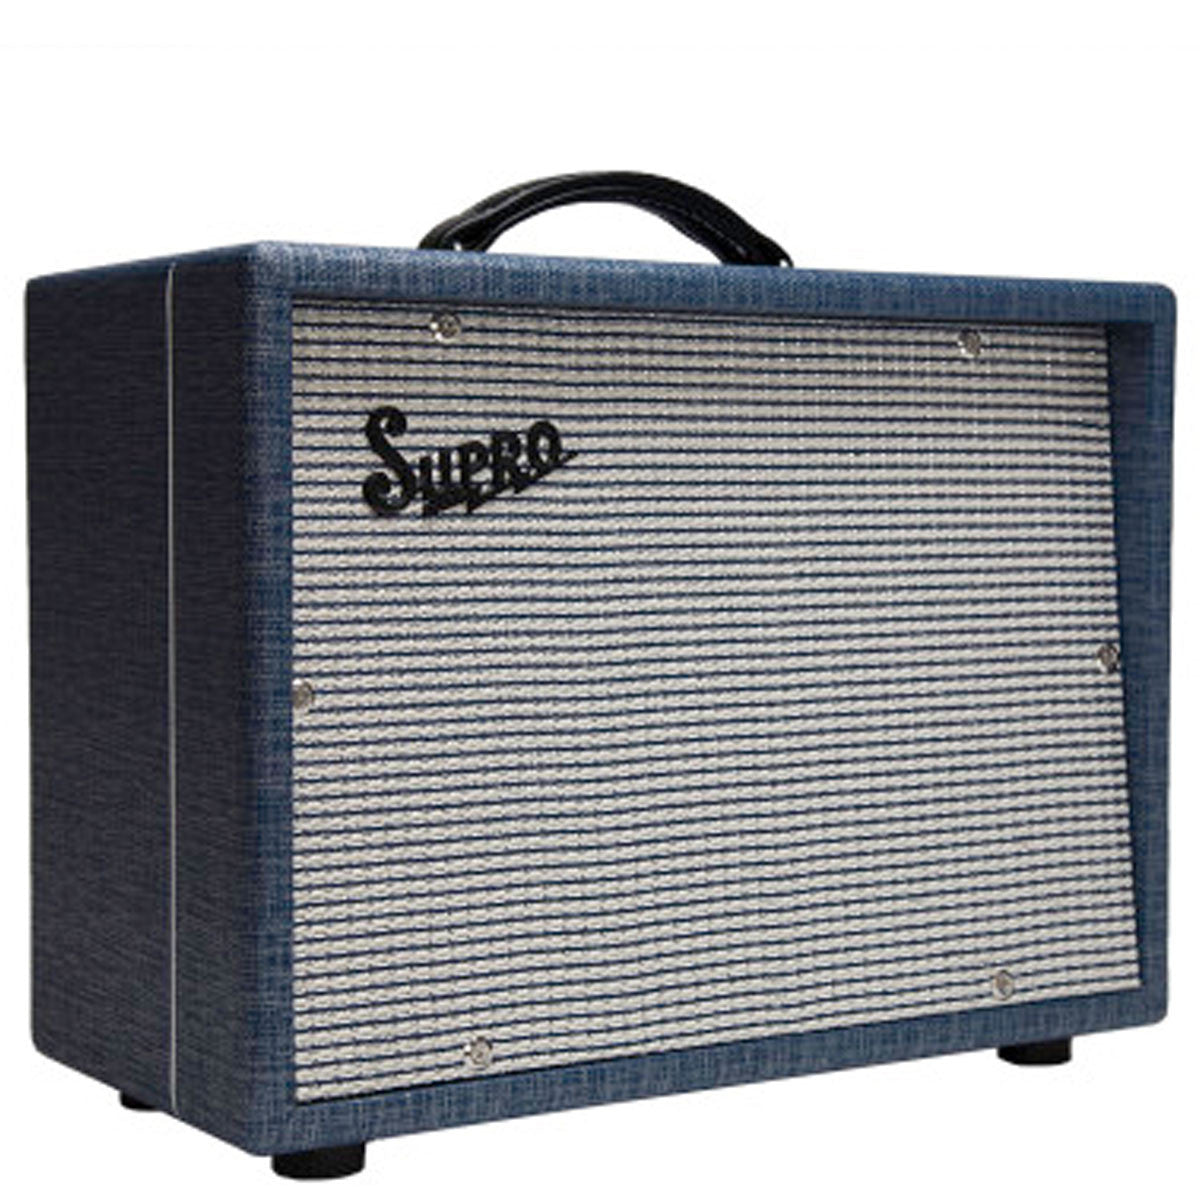 Supro - 1742 - Titan 1 X 12 Extension Cabinet - Vintage Guitar Boutique